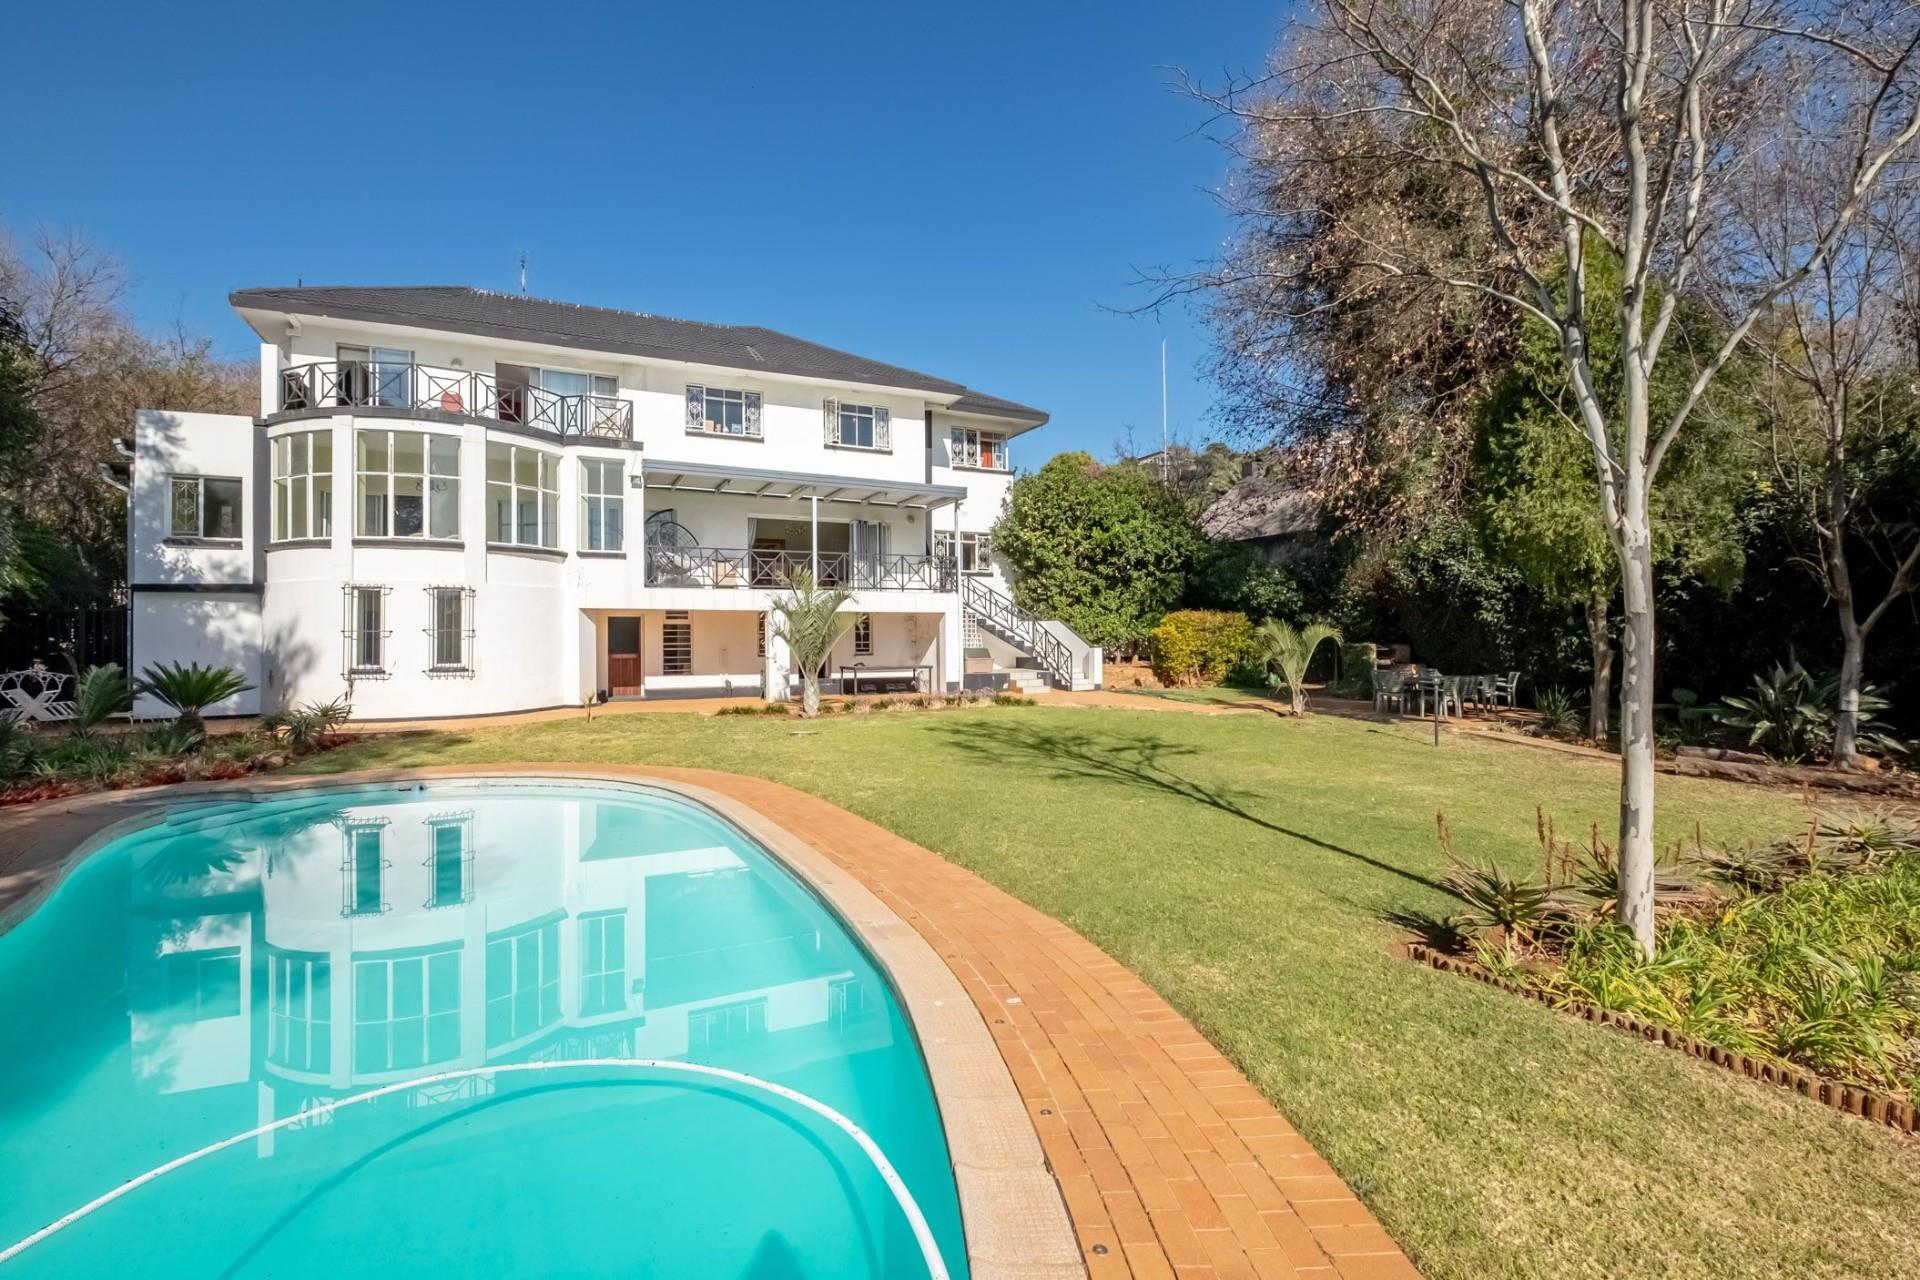 5 Bedroom House For Sale in Northcliff